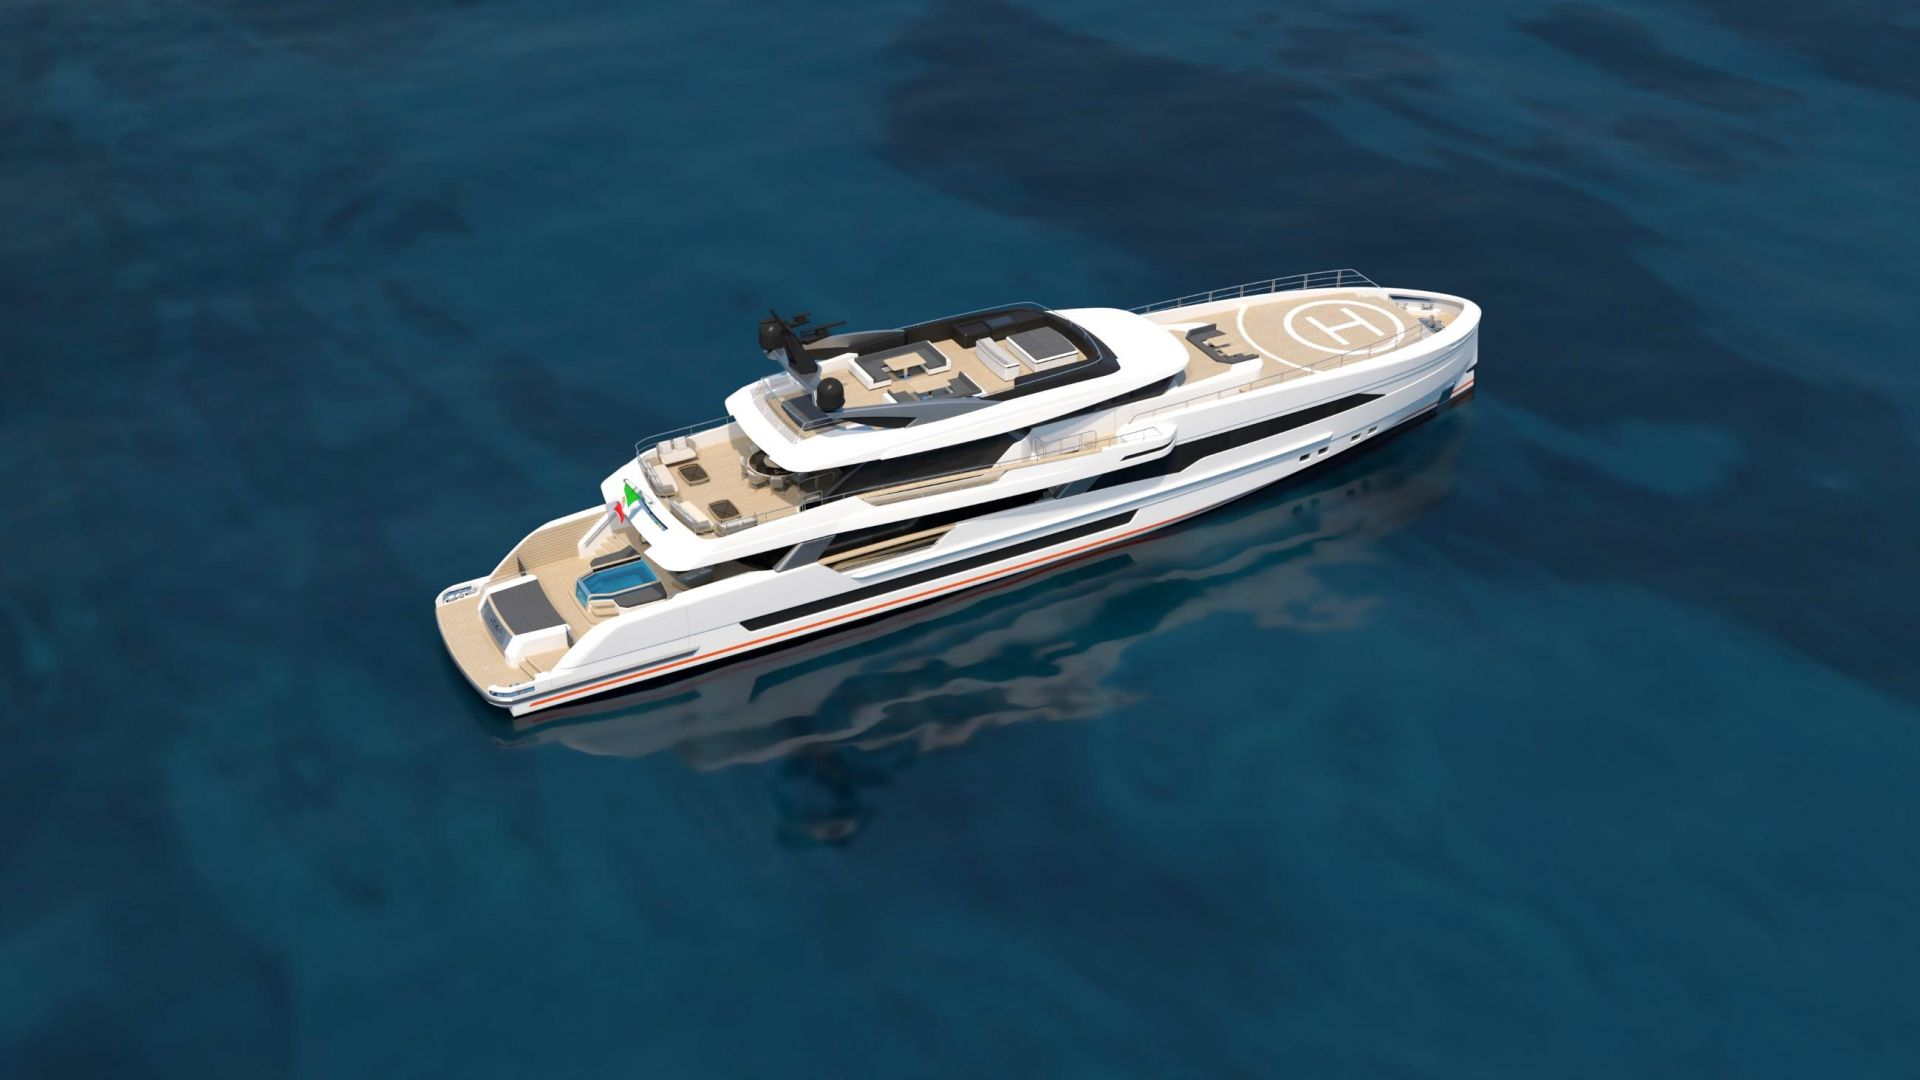 M/Y WIDER 170 yacht for sale rear view